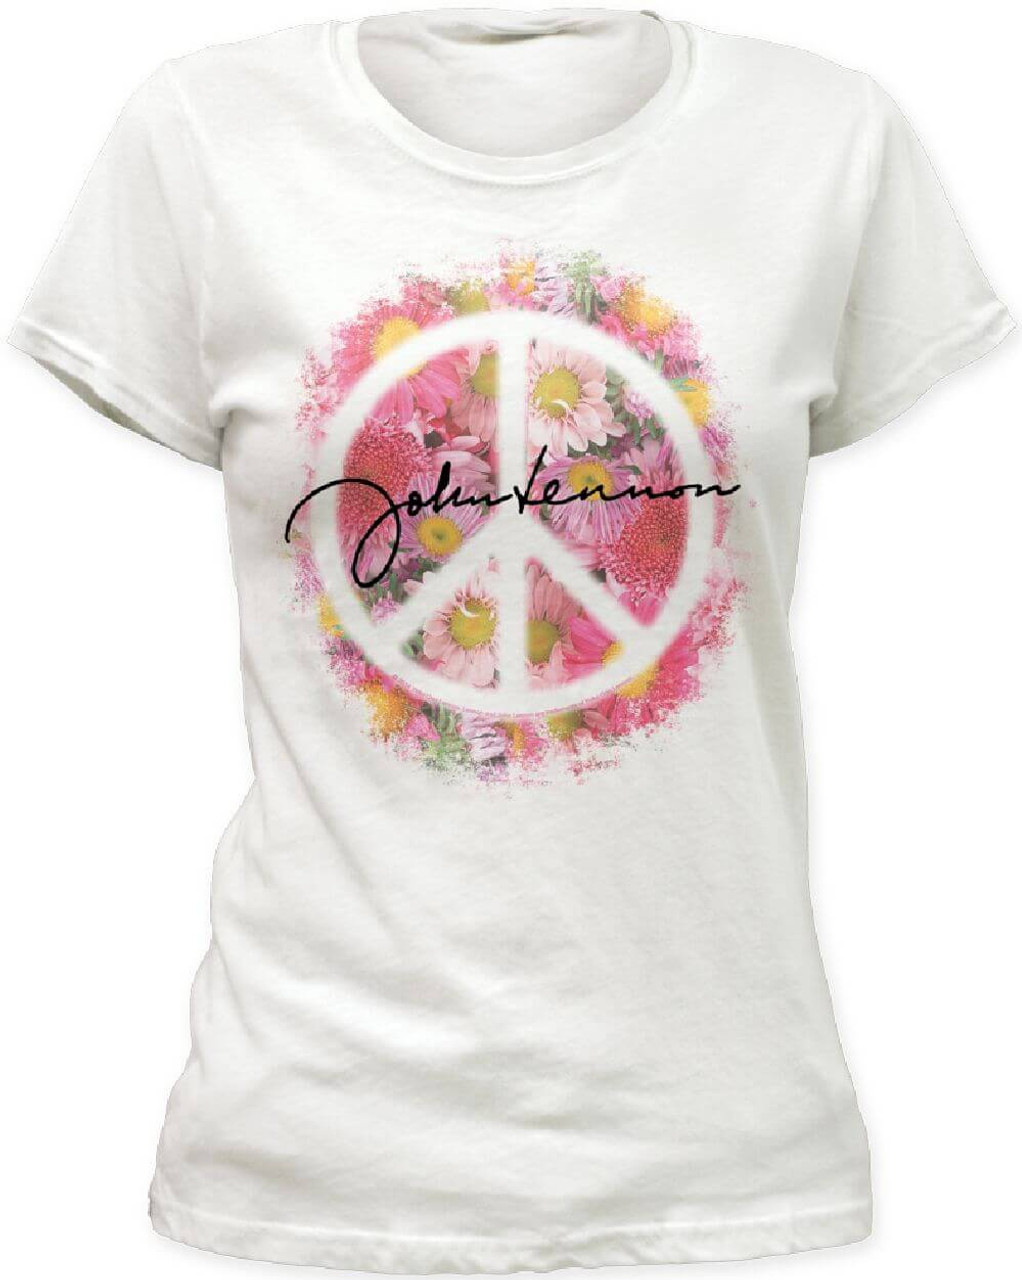 John Lennon Signature with Flowers and Peace Sign Women s White T-shirt 022ee47ab